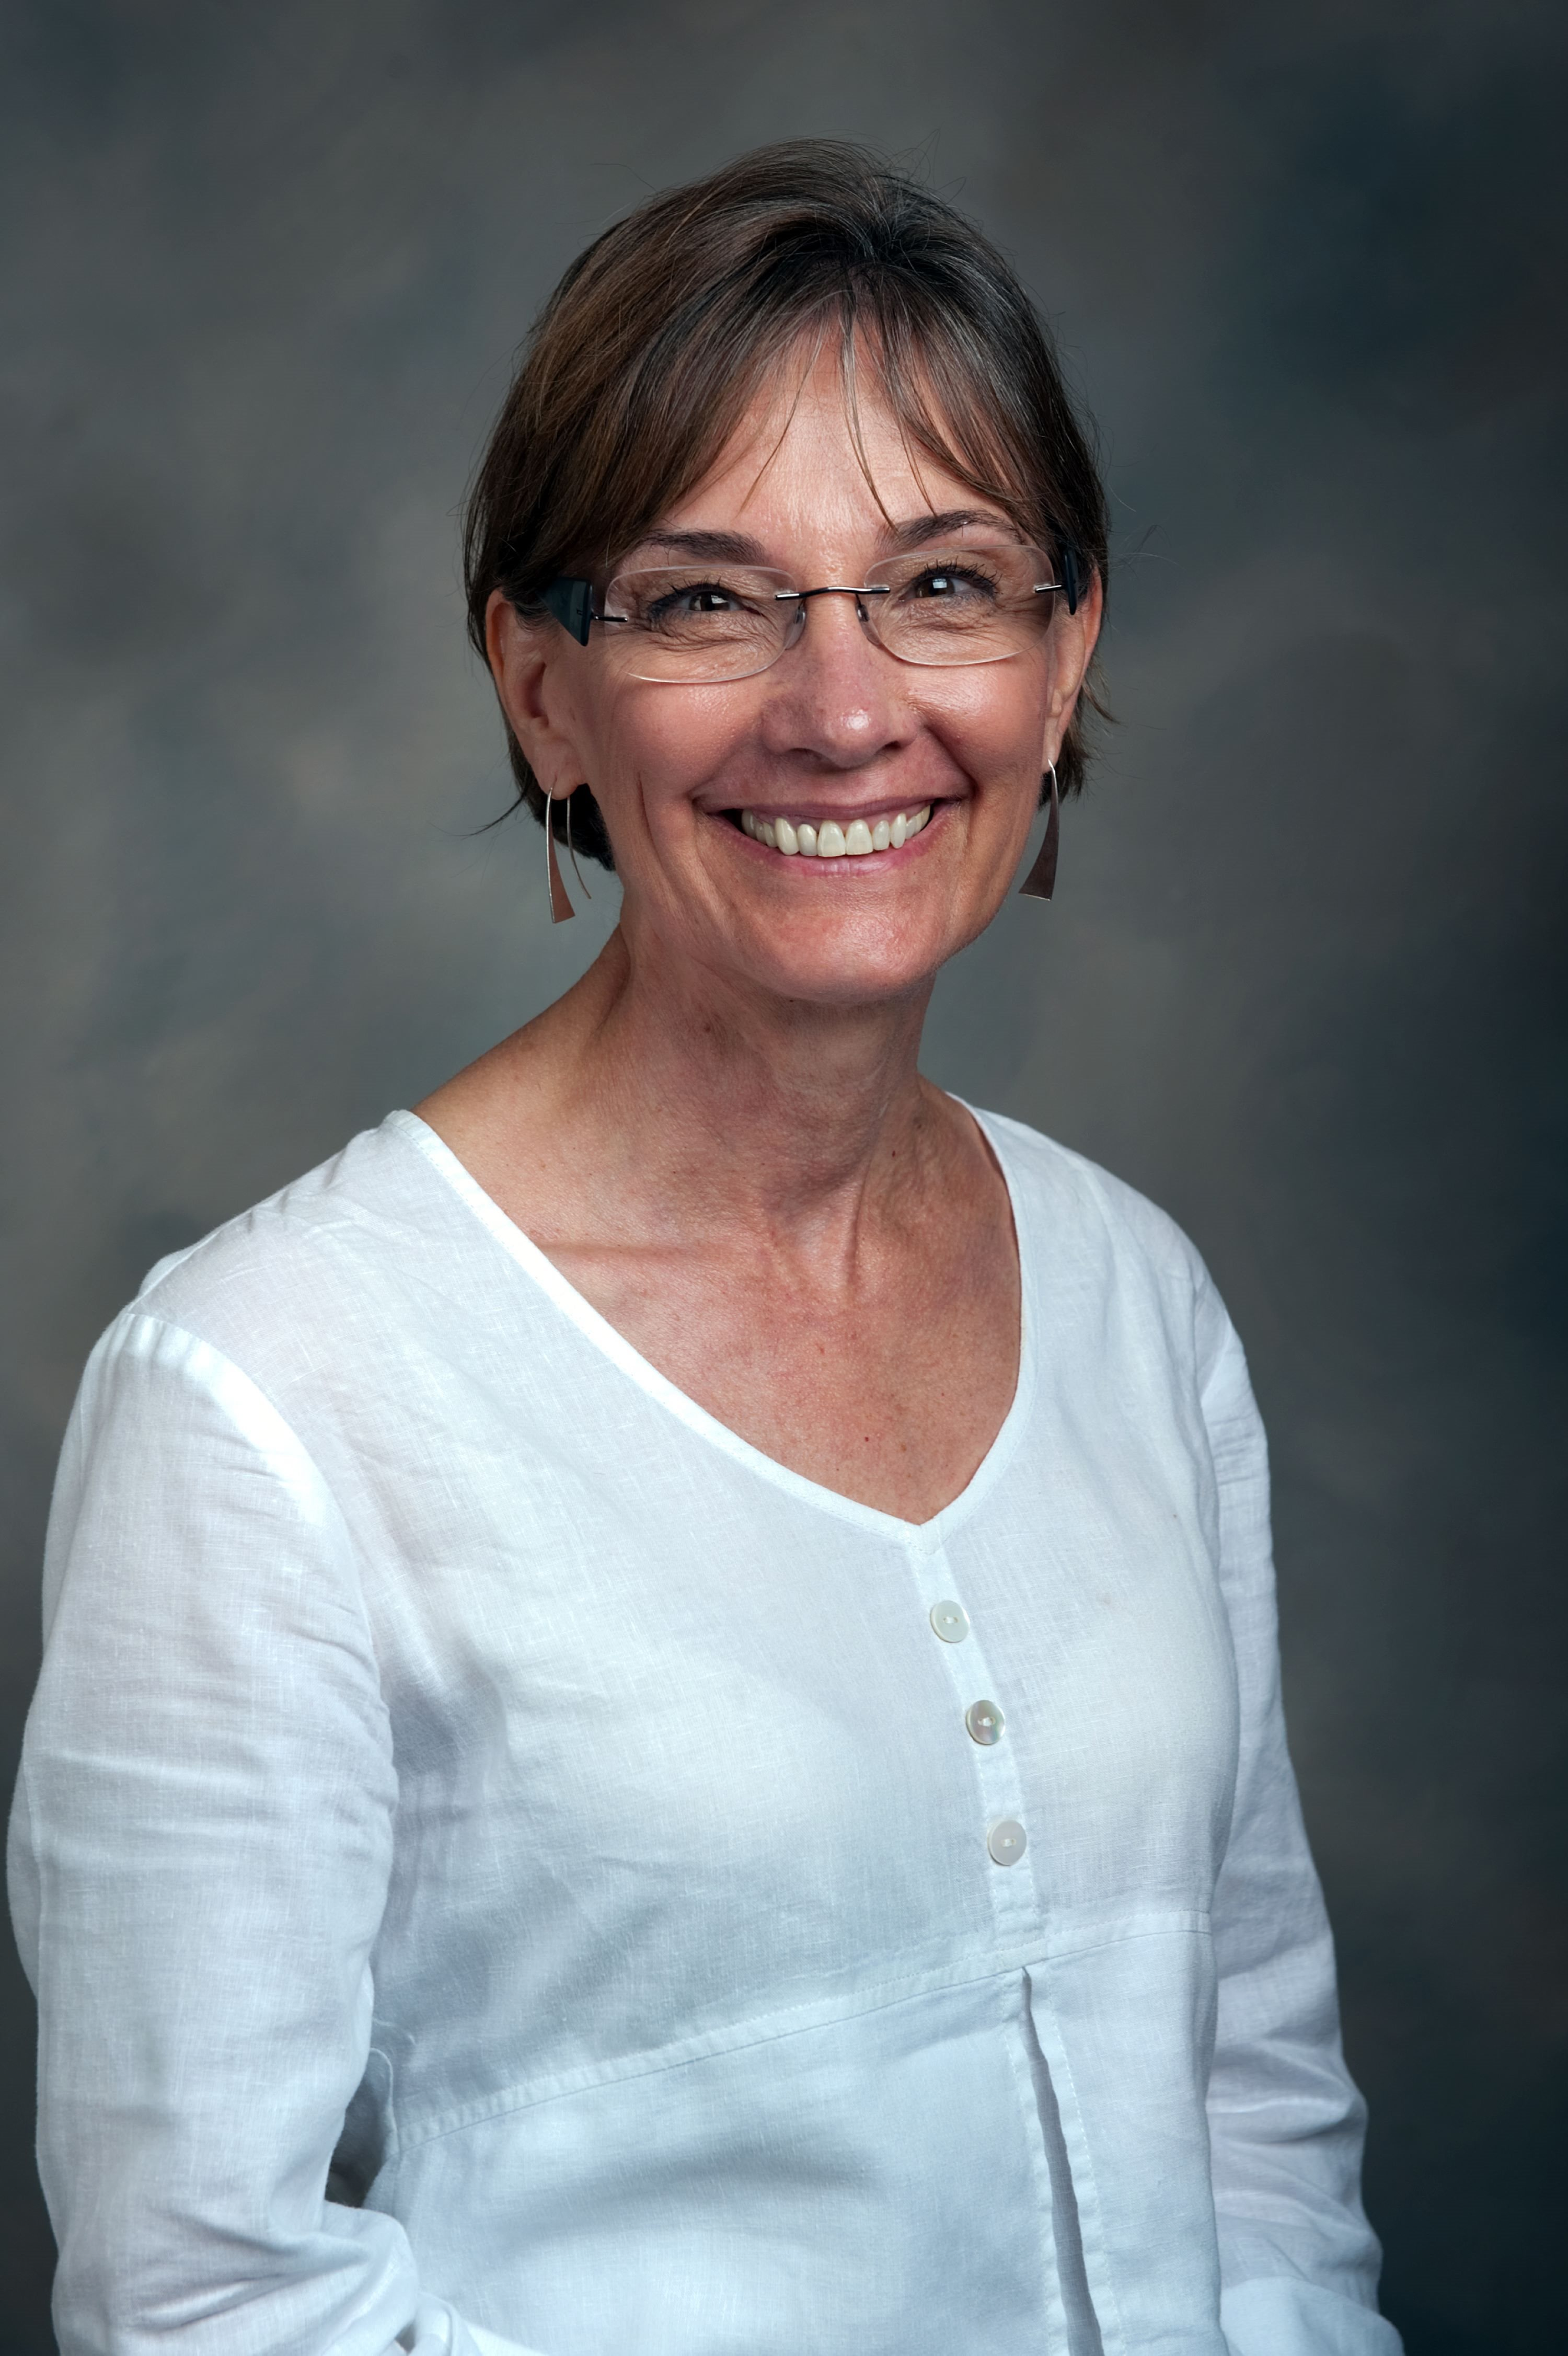 Dr. Deborah Long, Director of Teacher Education